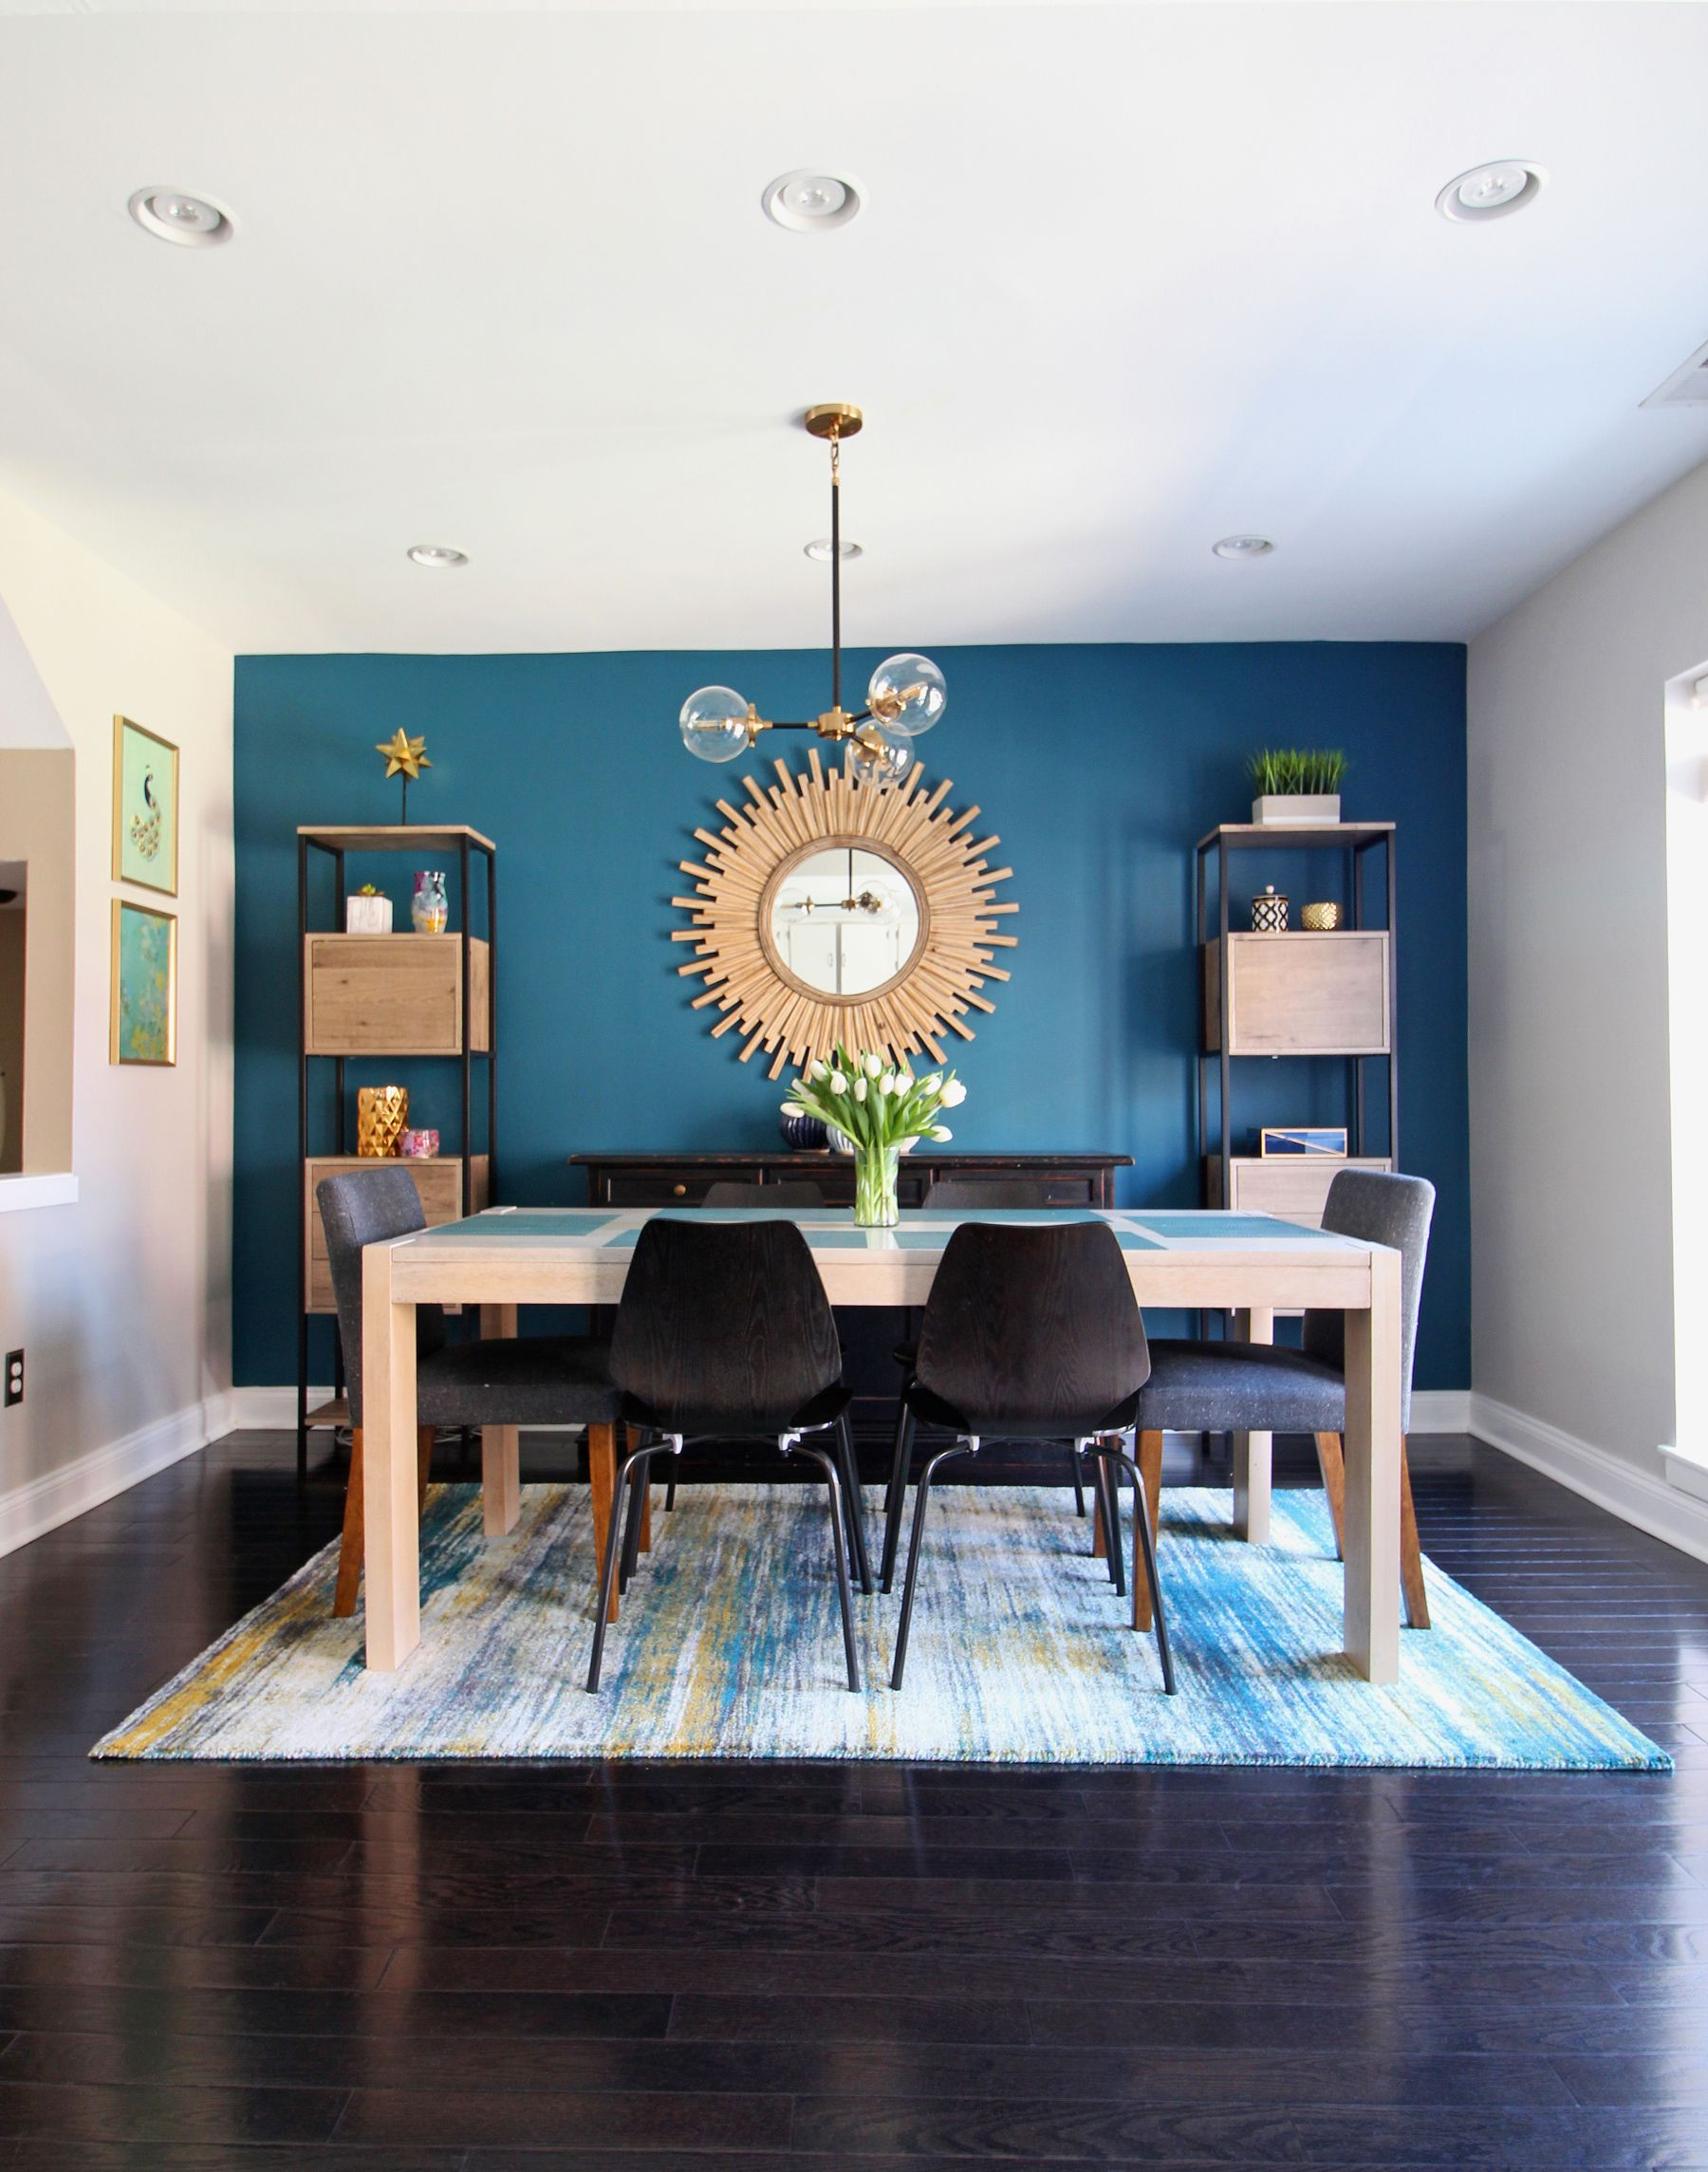 Queen Village Cozy Modern Dining Room Reveal Blue Walls Living Room Modern Dining Room Blue Living Room Color